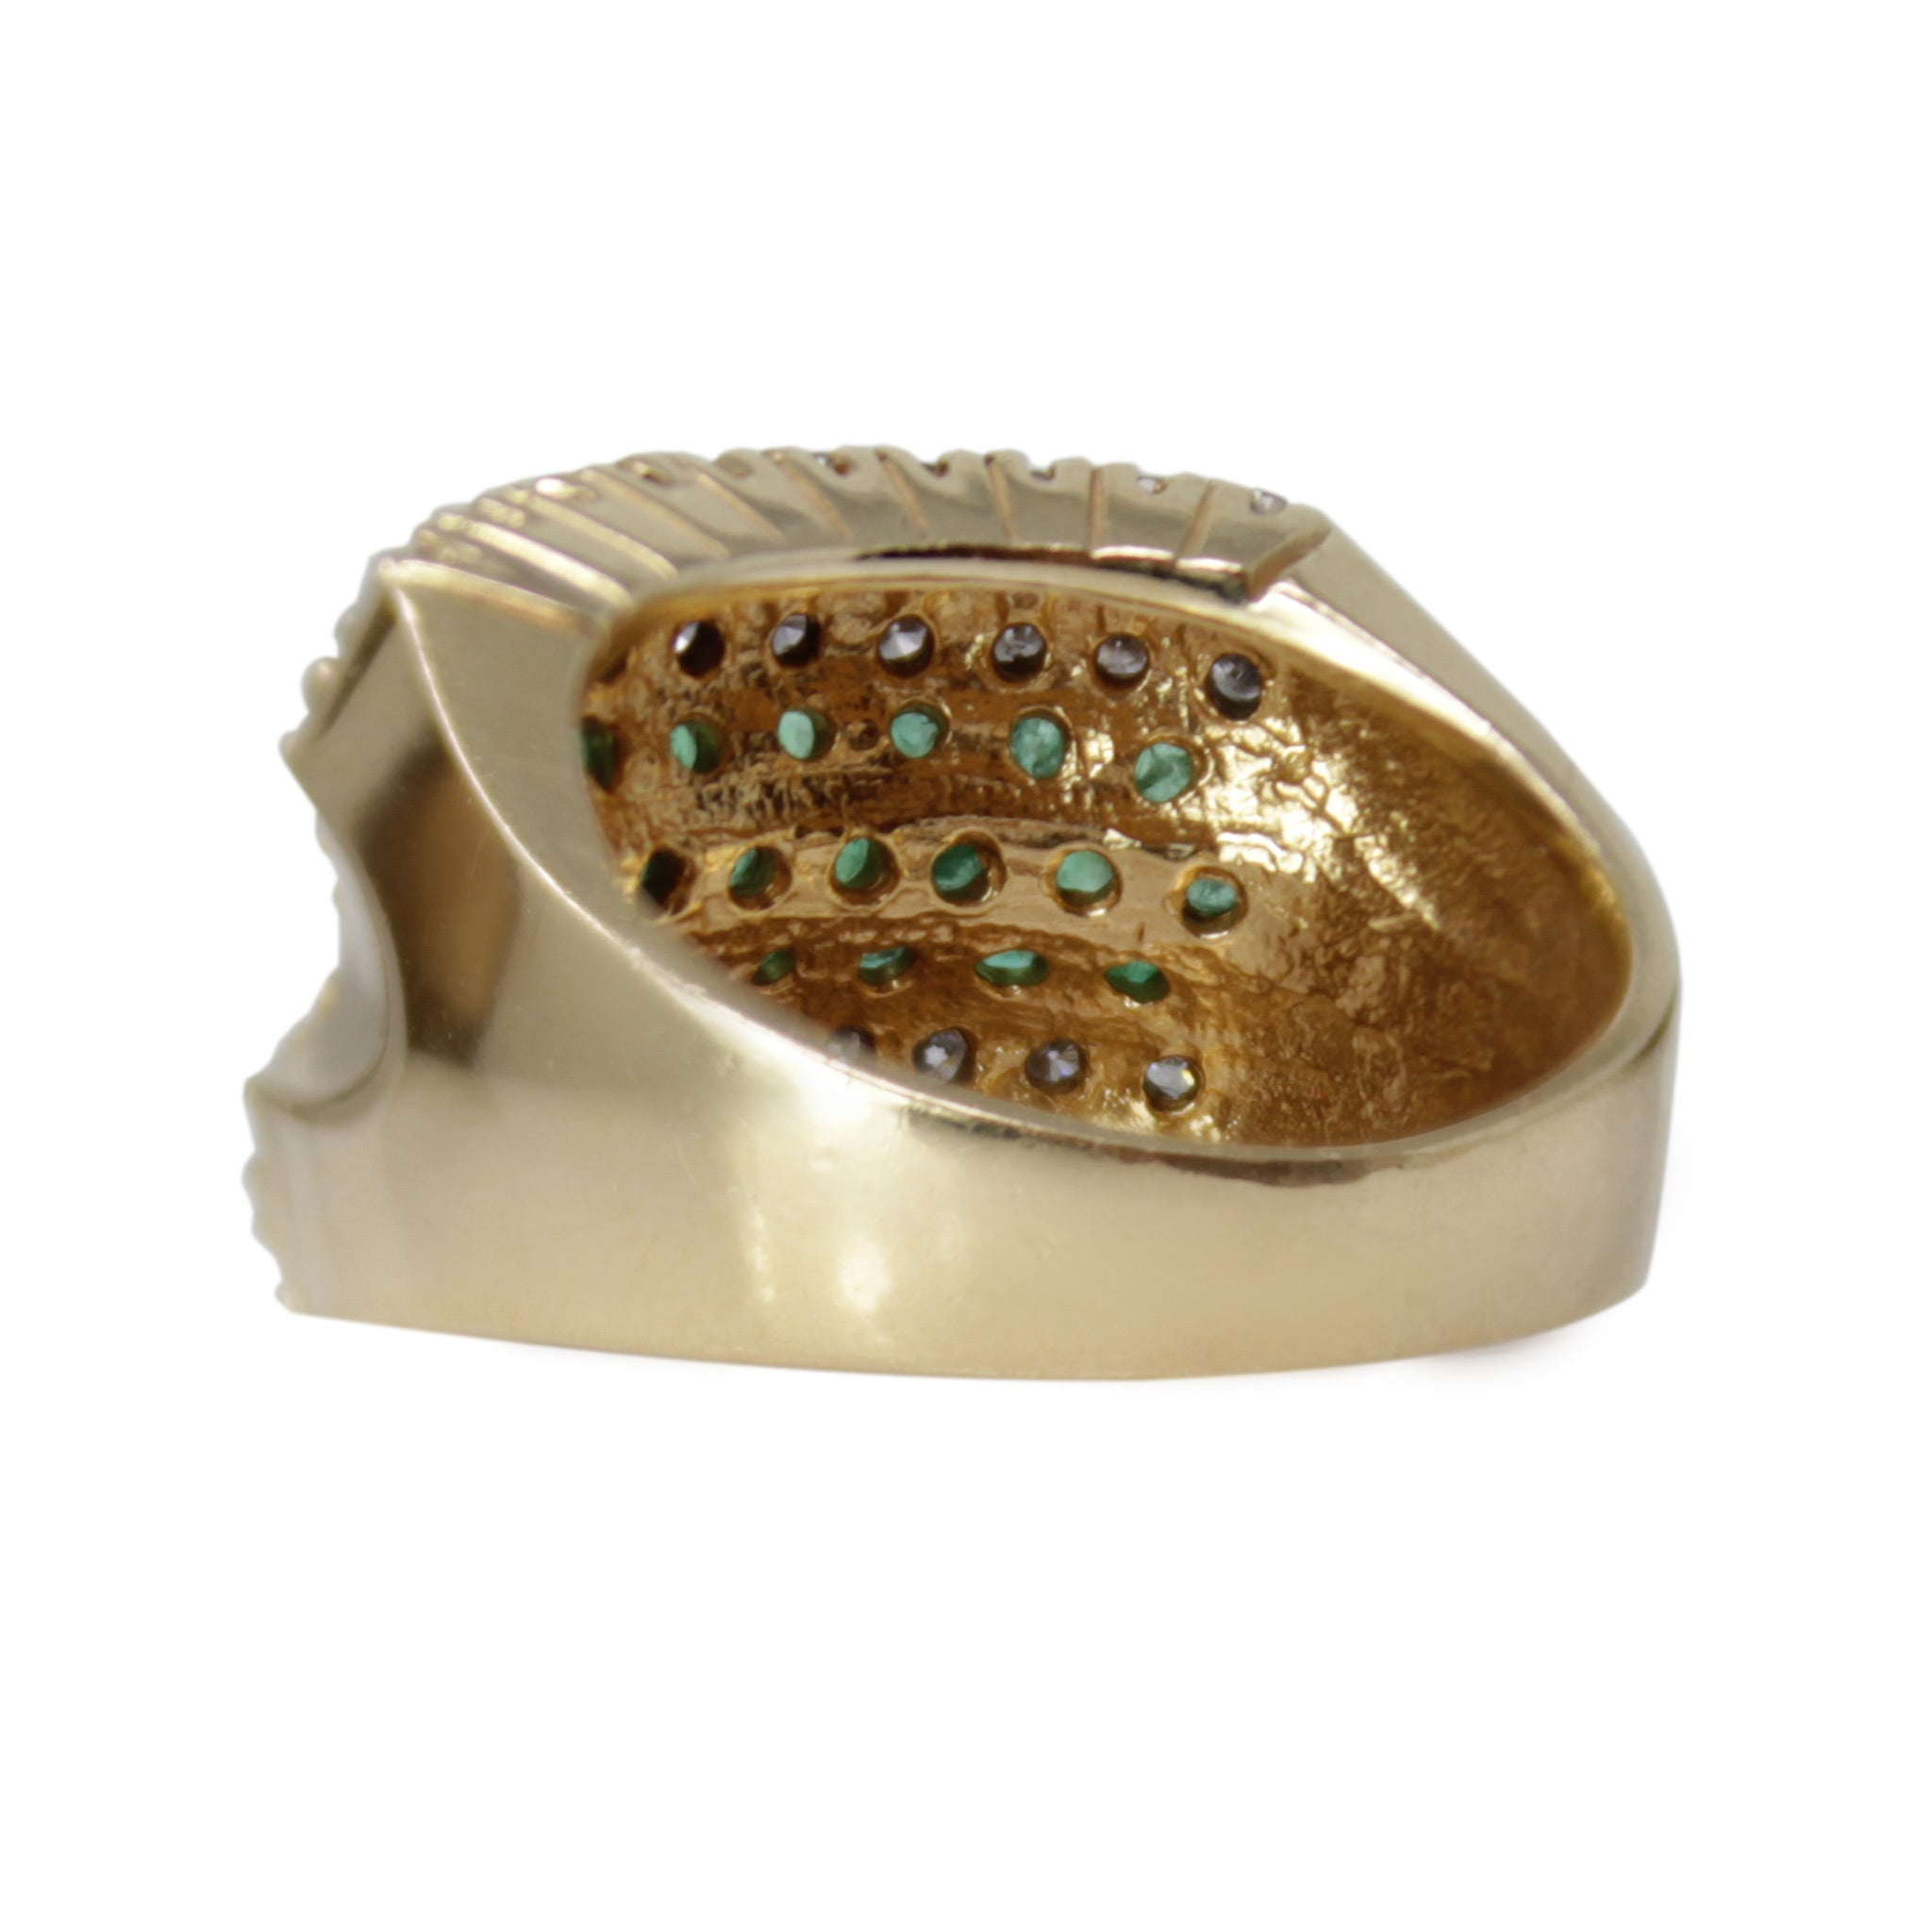 Gemini's Emerald Band - Striped Diamond and Emerald Flower Chunky 14k Yellow Gold Ring